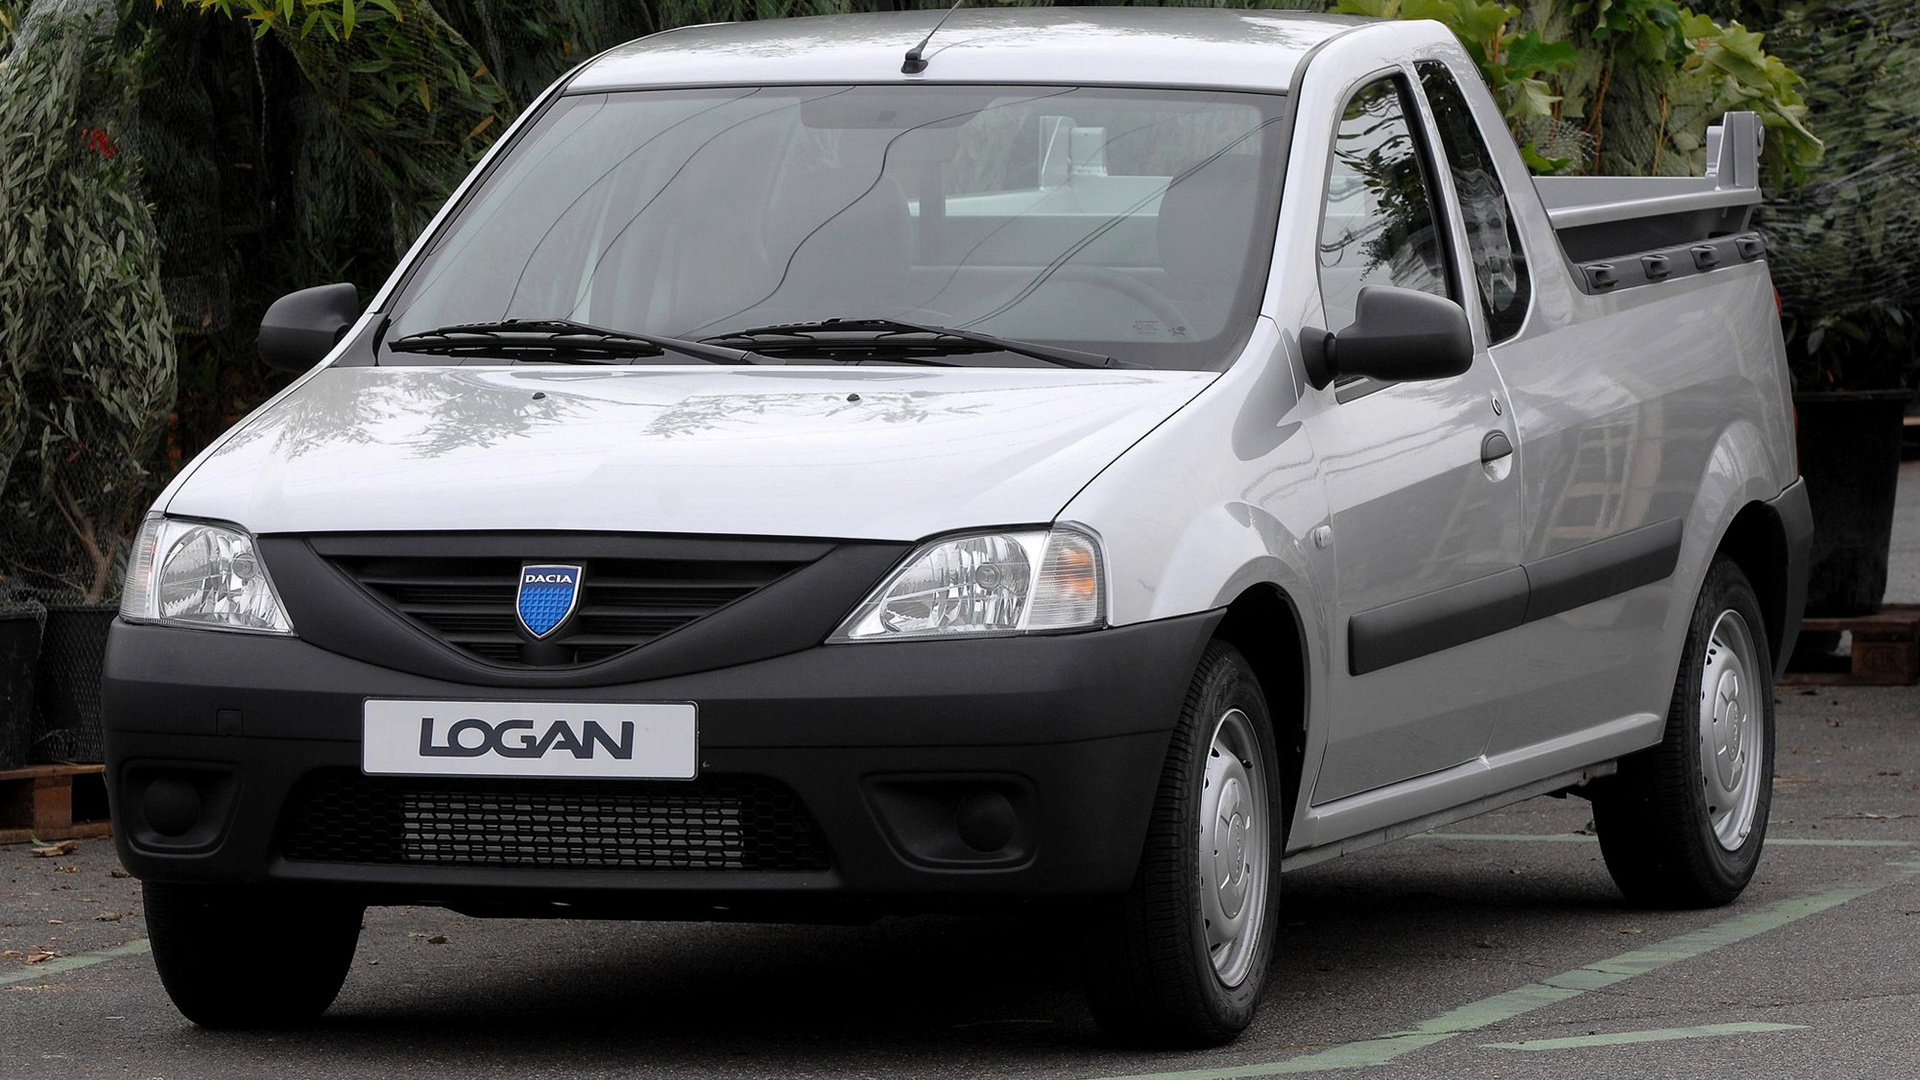 dacia logan pick up 2007 wallpapers and hd images car pixel. Black Bedroom Furniture Sets. Home Design Ideas